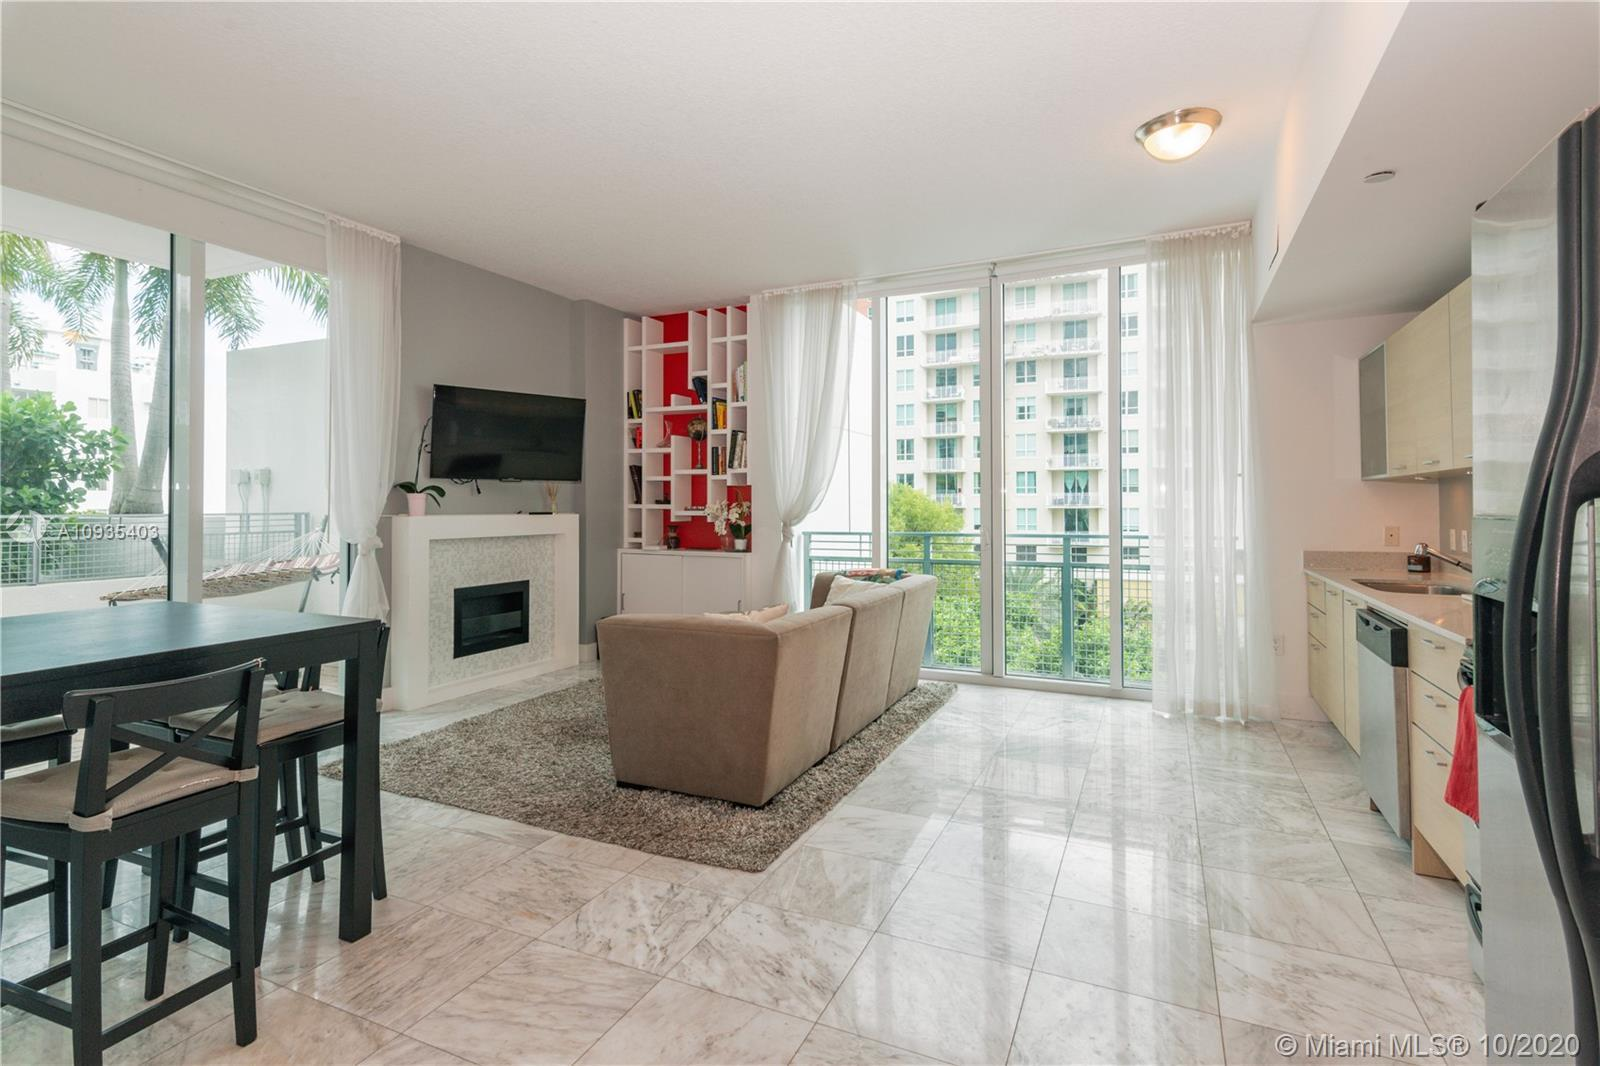 Excellent two-bedroom corner unit with spacious and bright open floor plan in Edgewater. Impressive